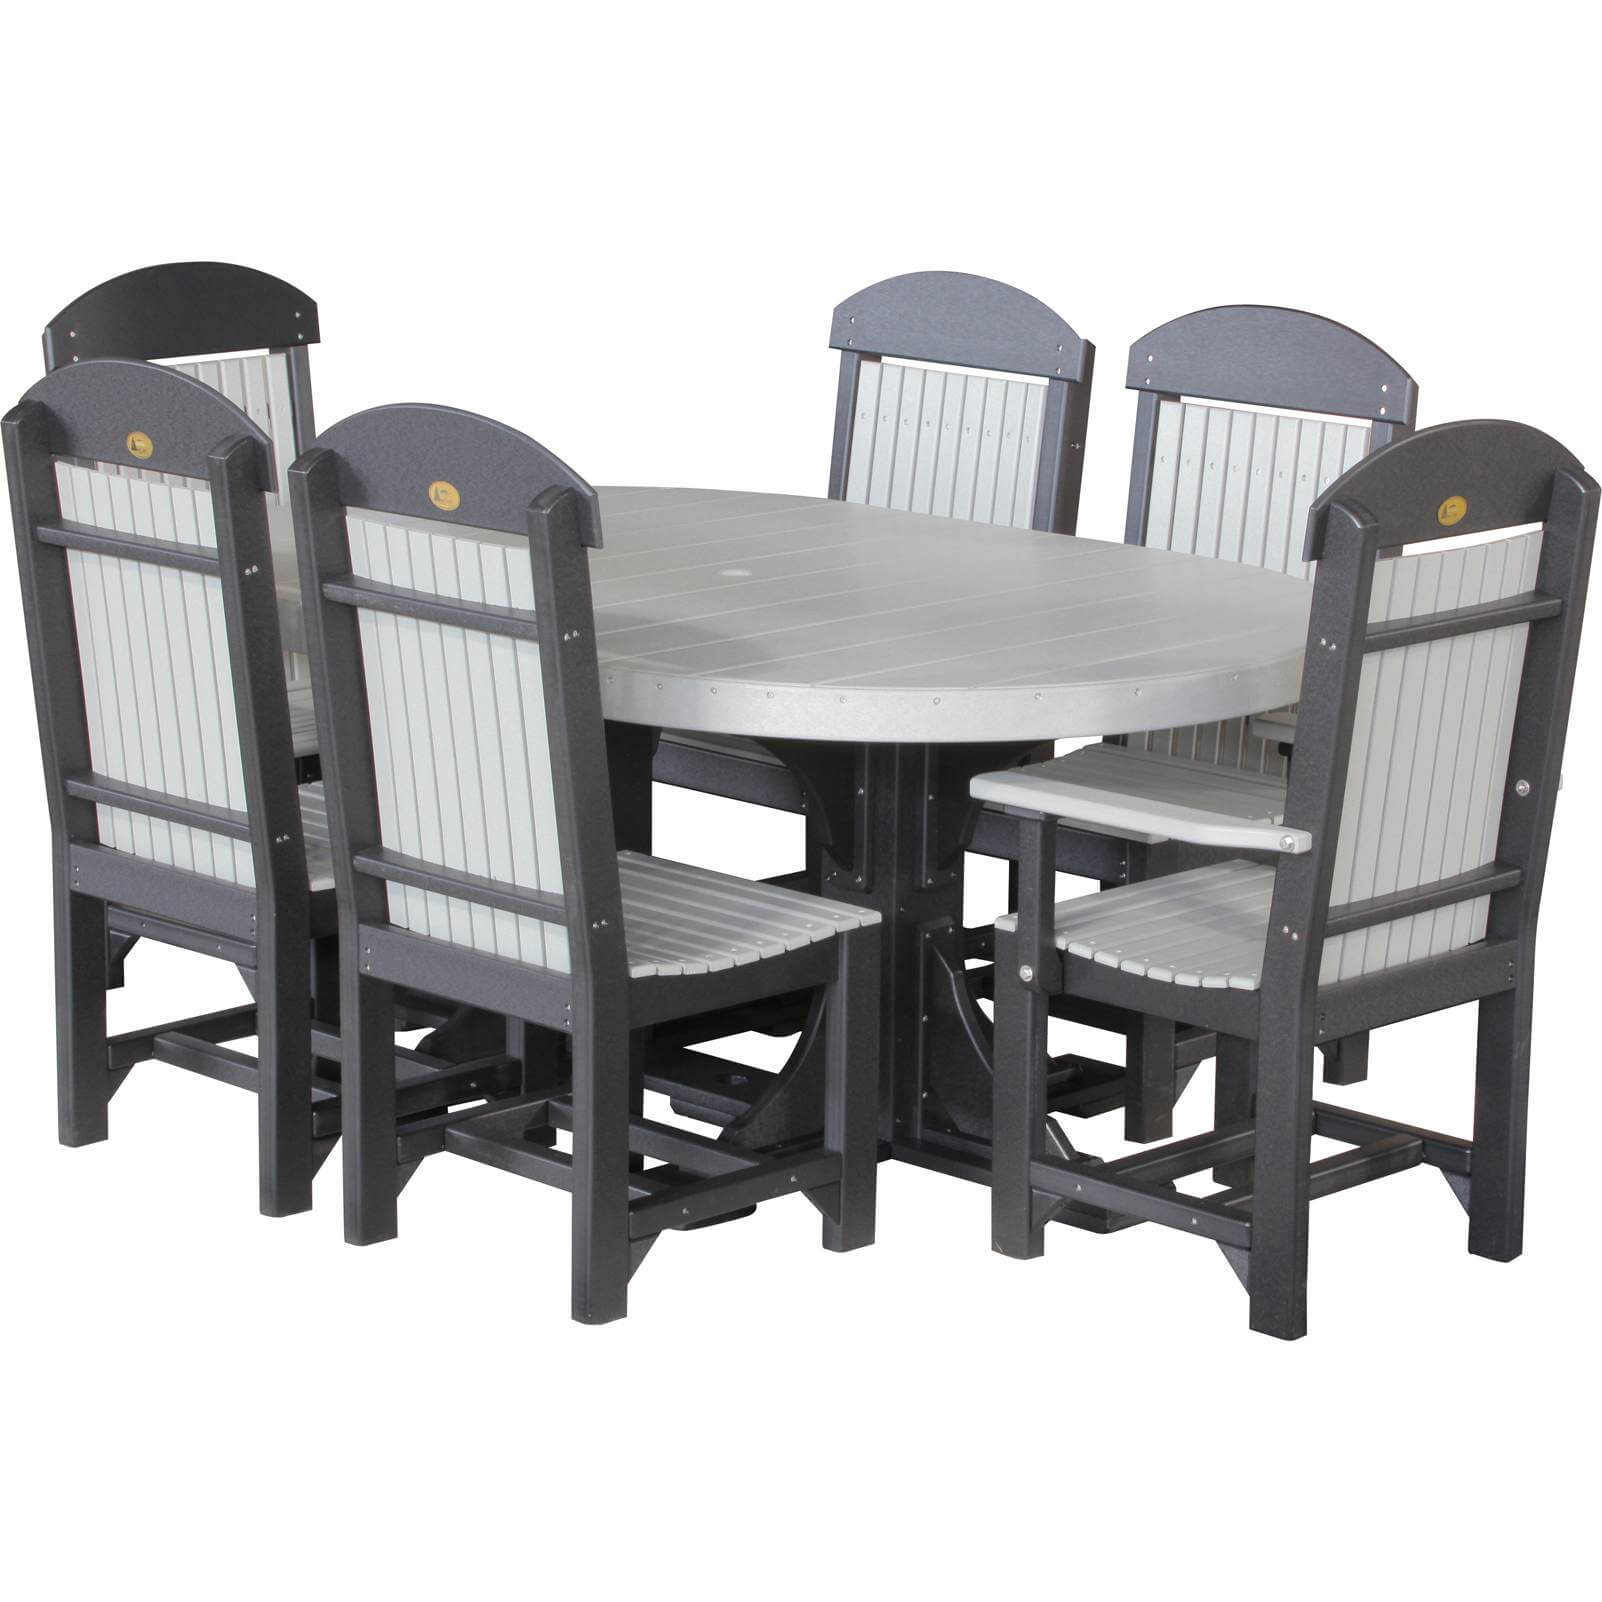 LuxCraft Poly 4x6 Oval Table Set · Hostetler s Furniture